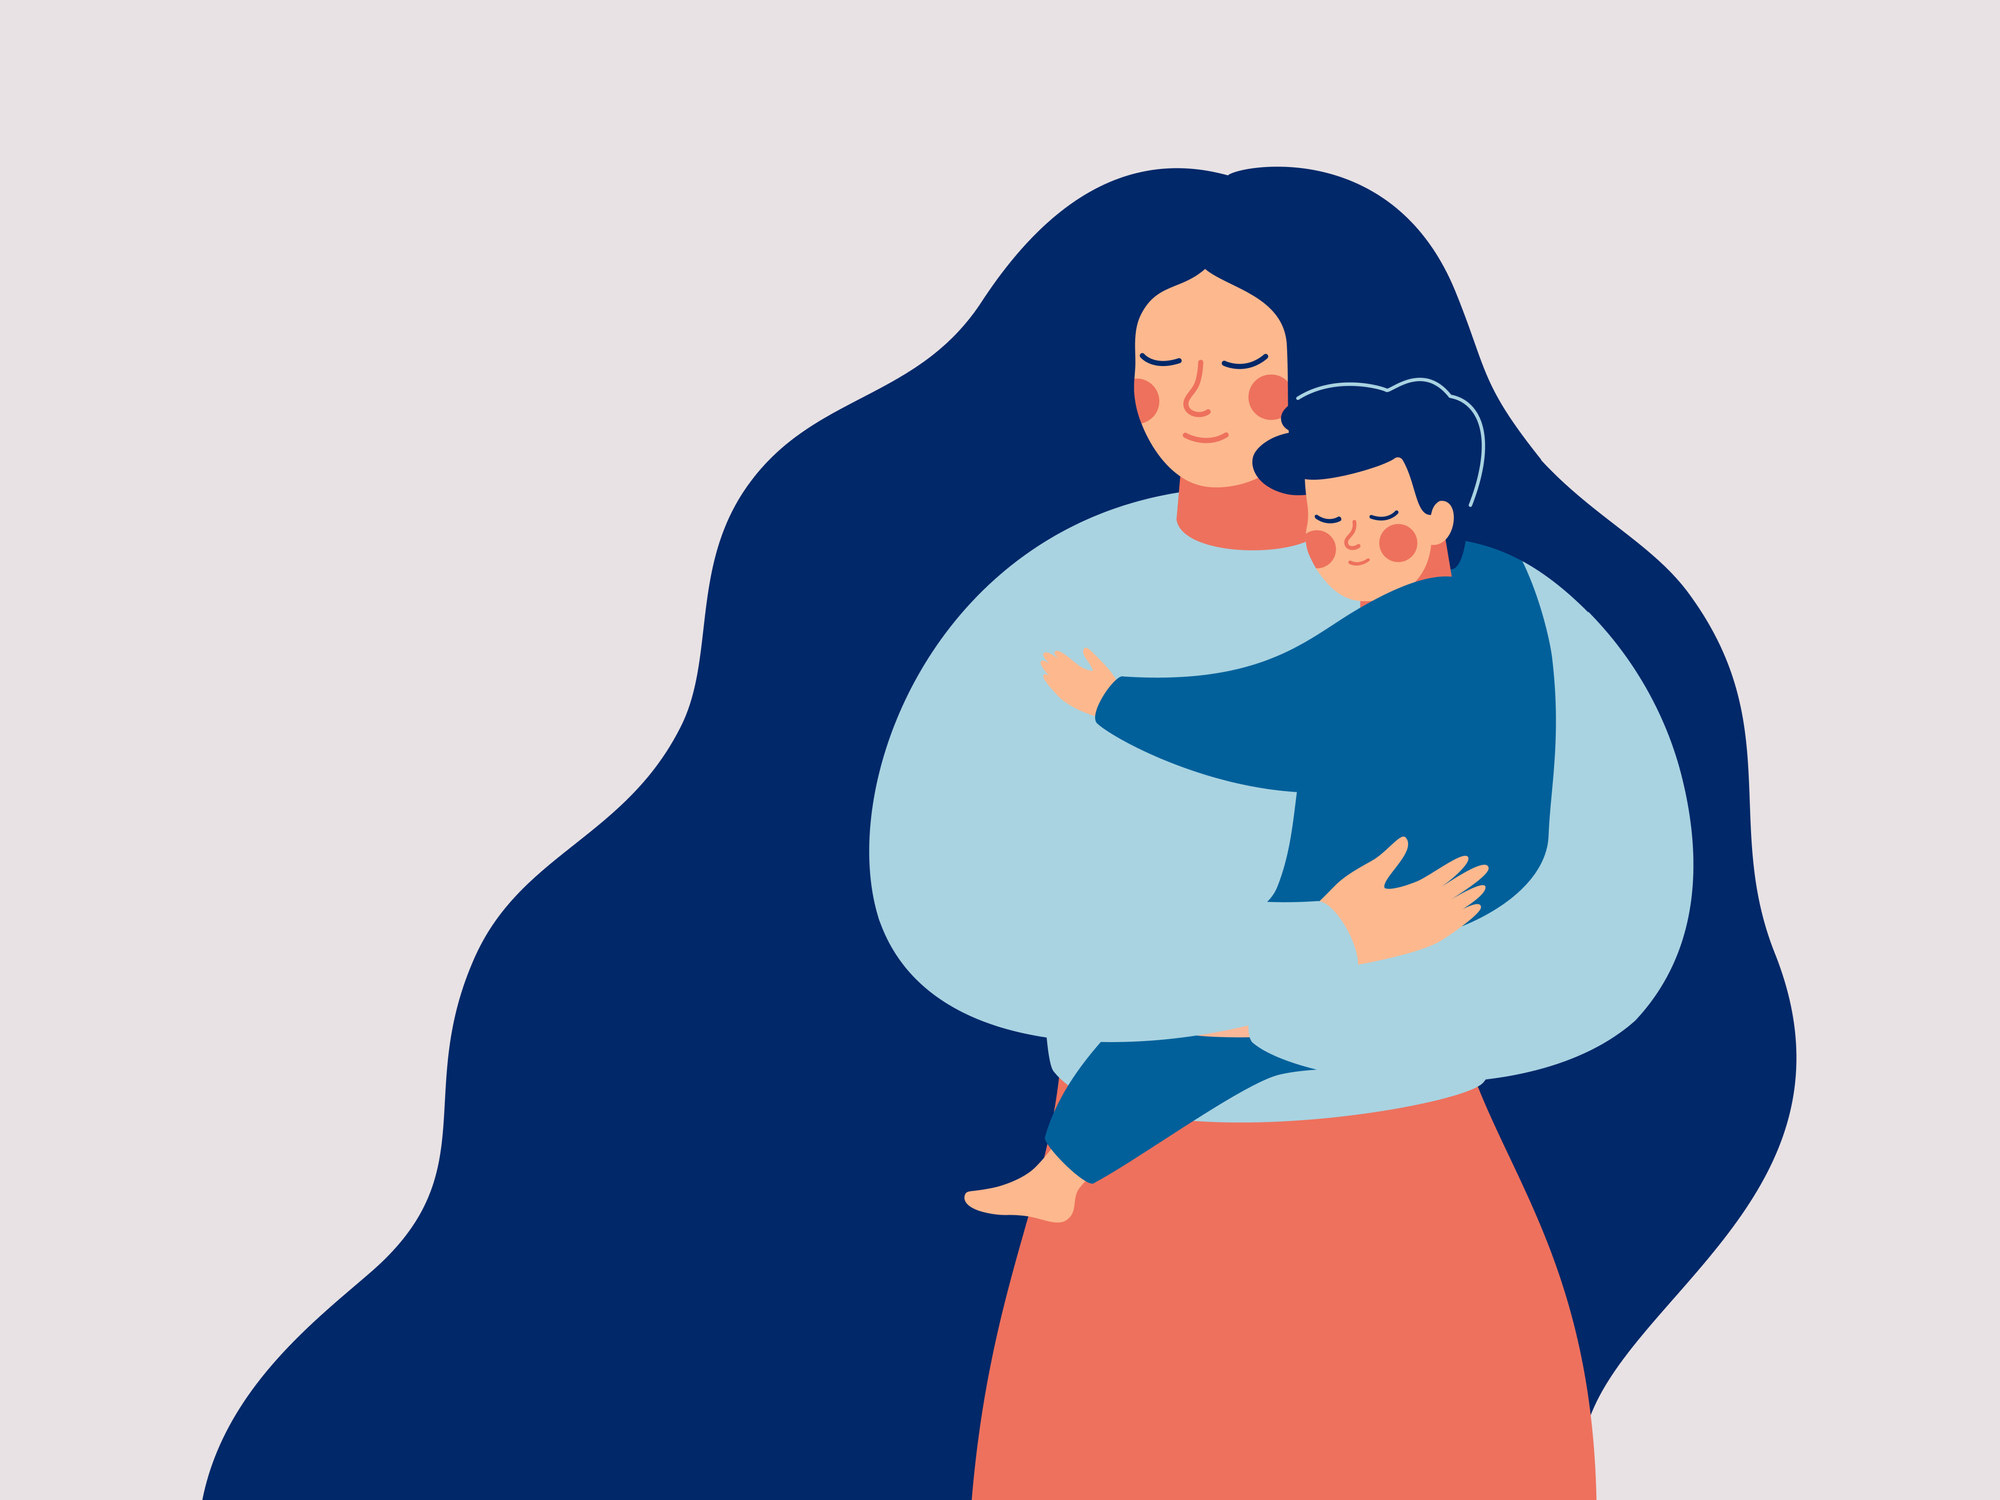 An illustration of a mother holding her son with care and love